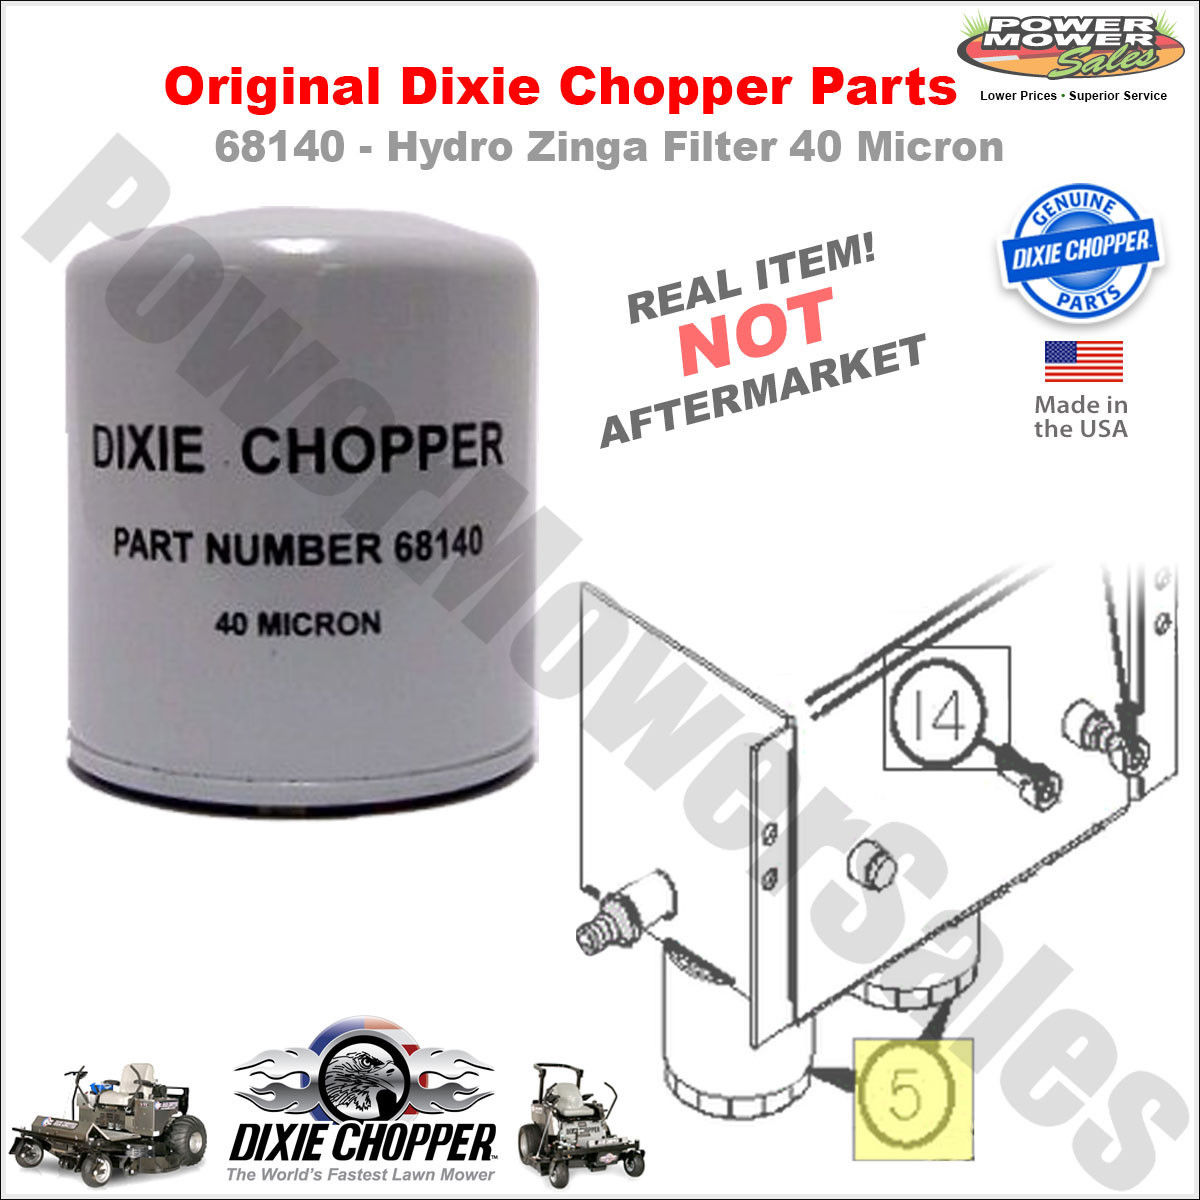 Details about 68140 Dixie Chopper 40 Micron Hydraulic Filter for 3066LP &  More Lawn Mowers